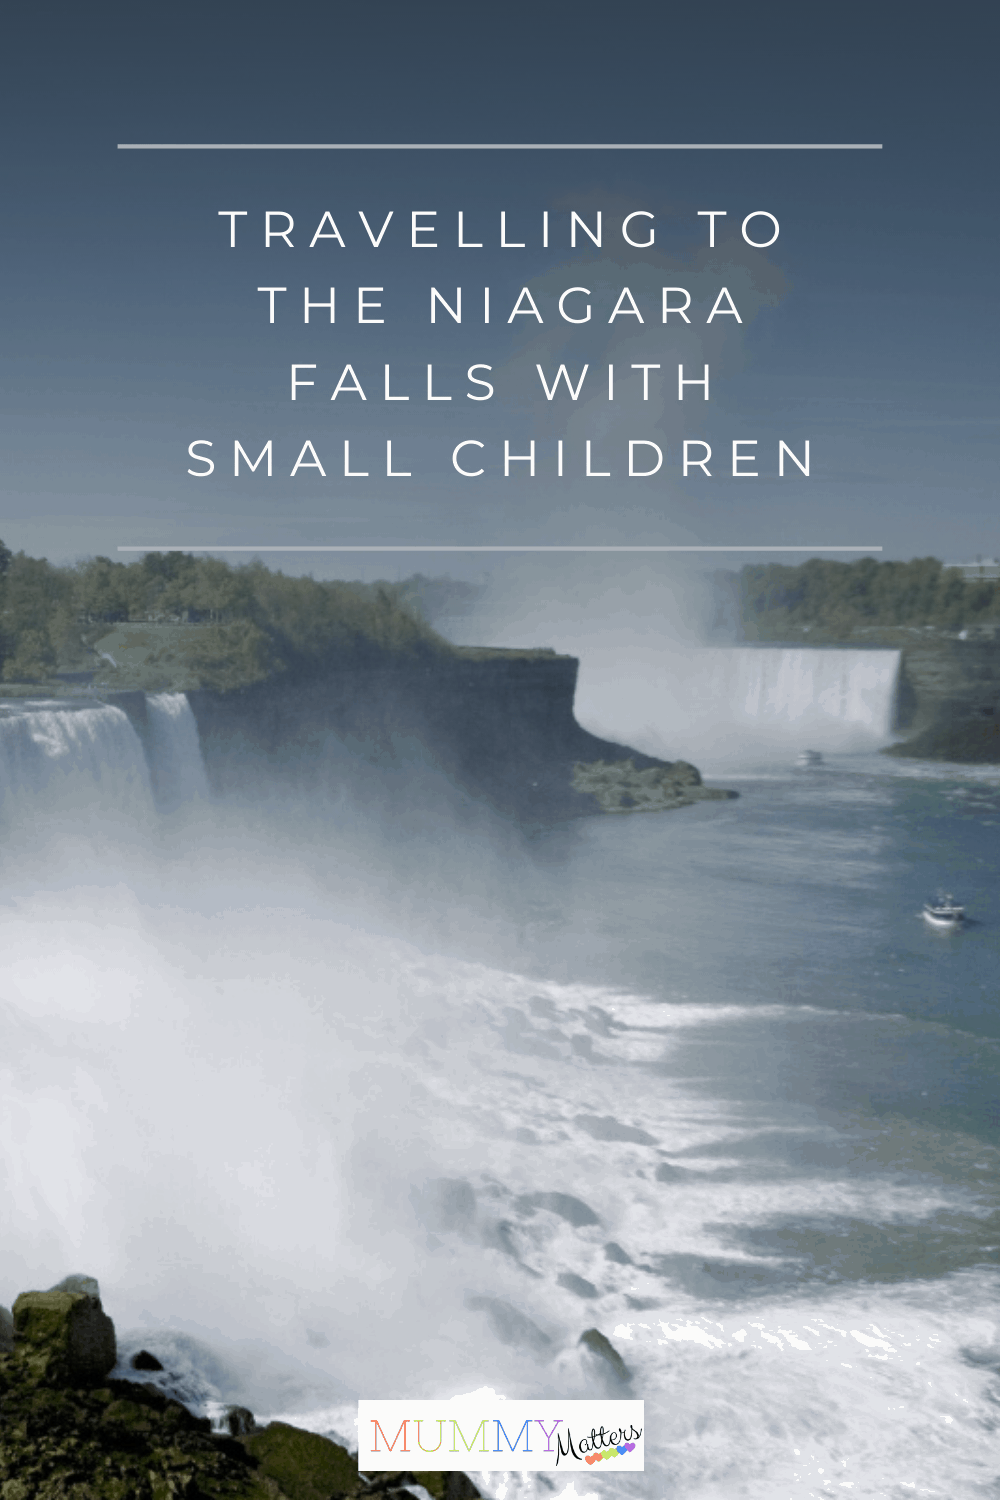 If you plan travelling to Niagara Falls with small children one day, this article is for you. It is a quick round-up of some of the best places to take them, in and around the area.